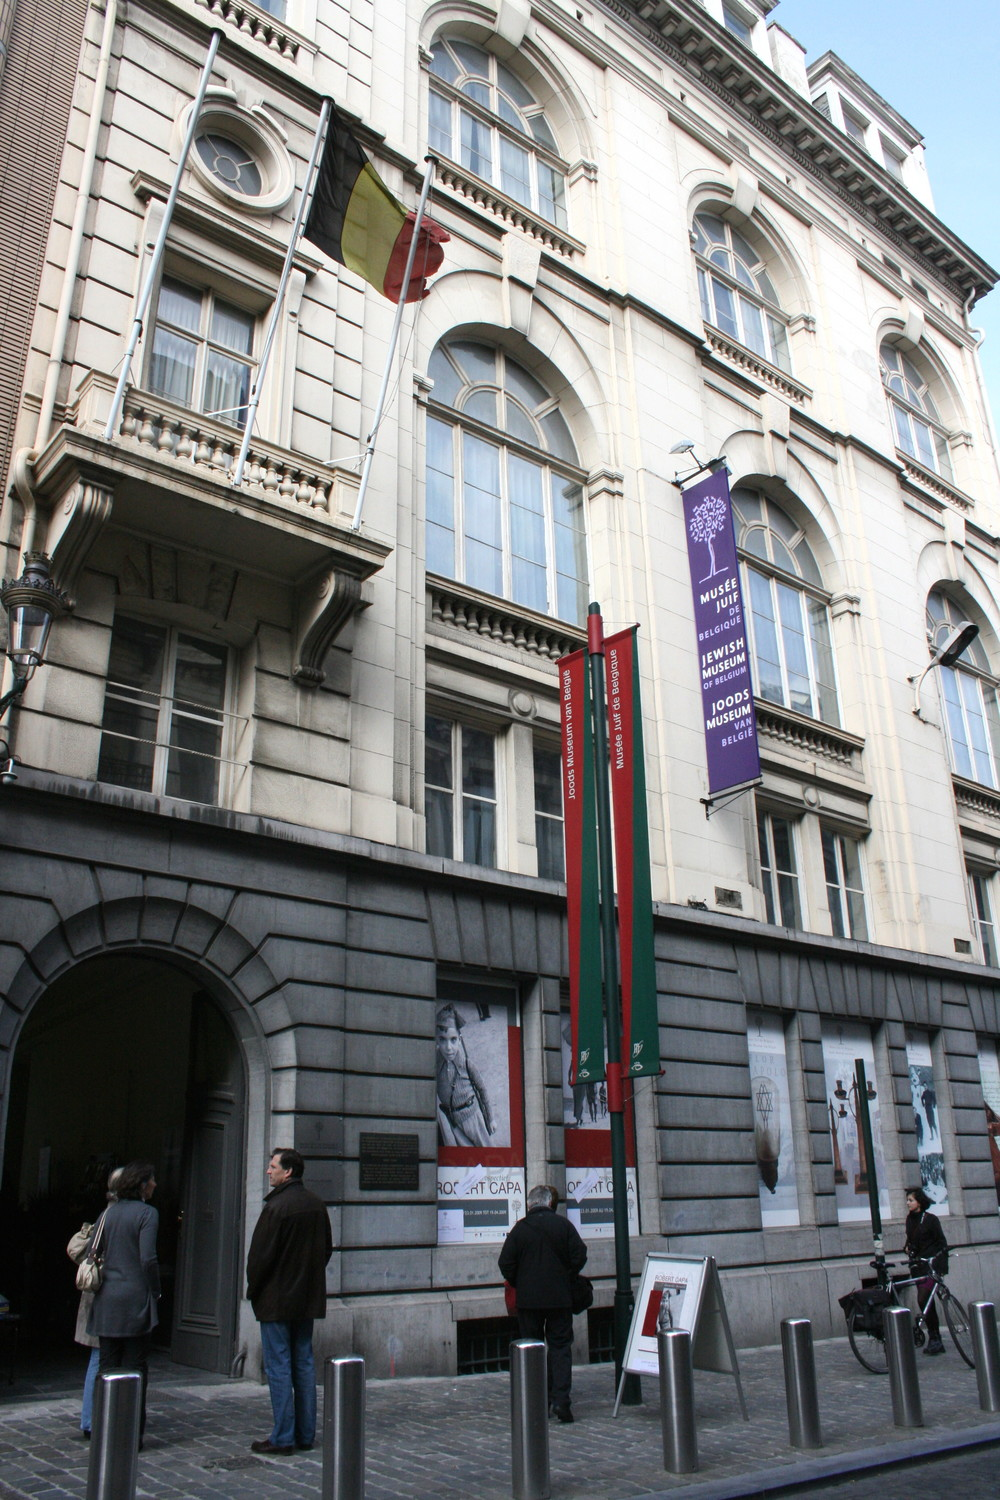 Thee people were shot and killed at the Jewish Museum of Belgium in Brussels (pictured) on Saturday. Credit: Wikimedia Commons.